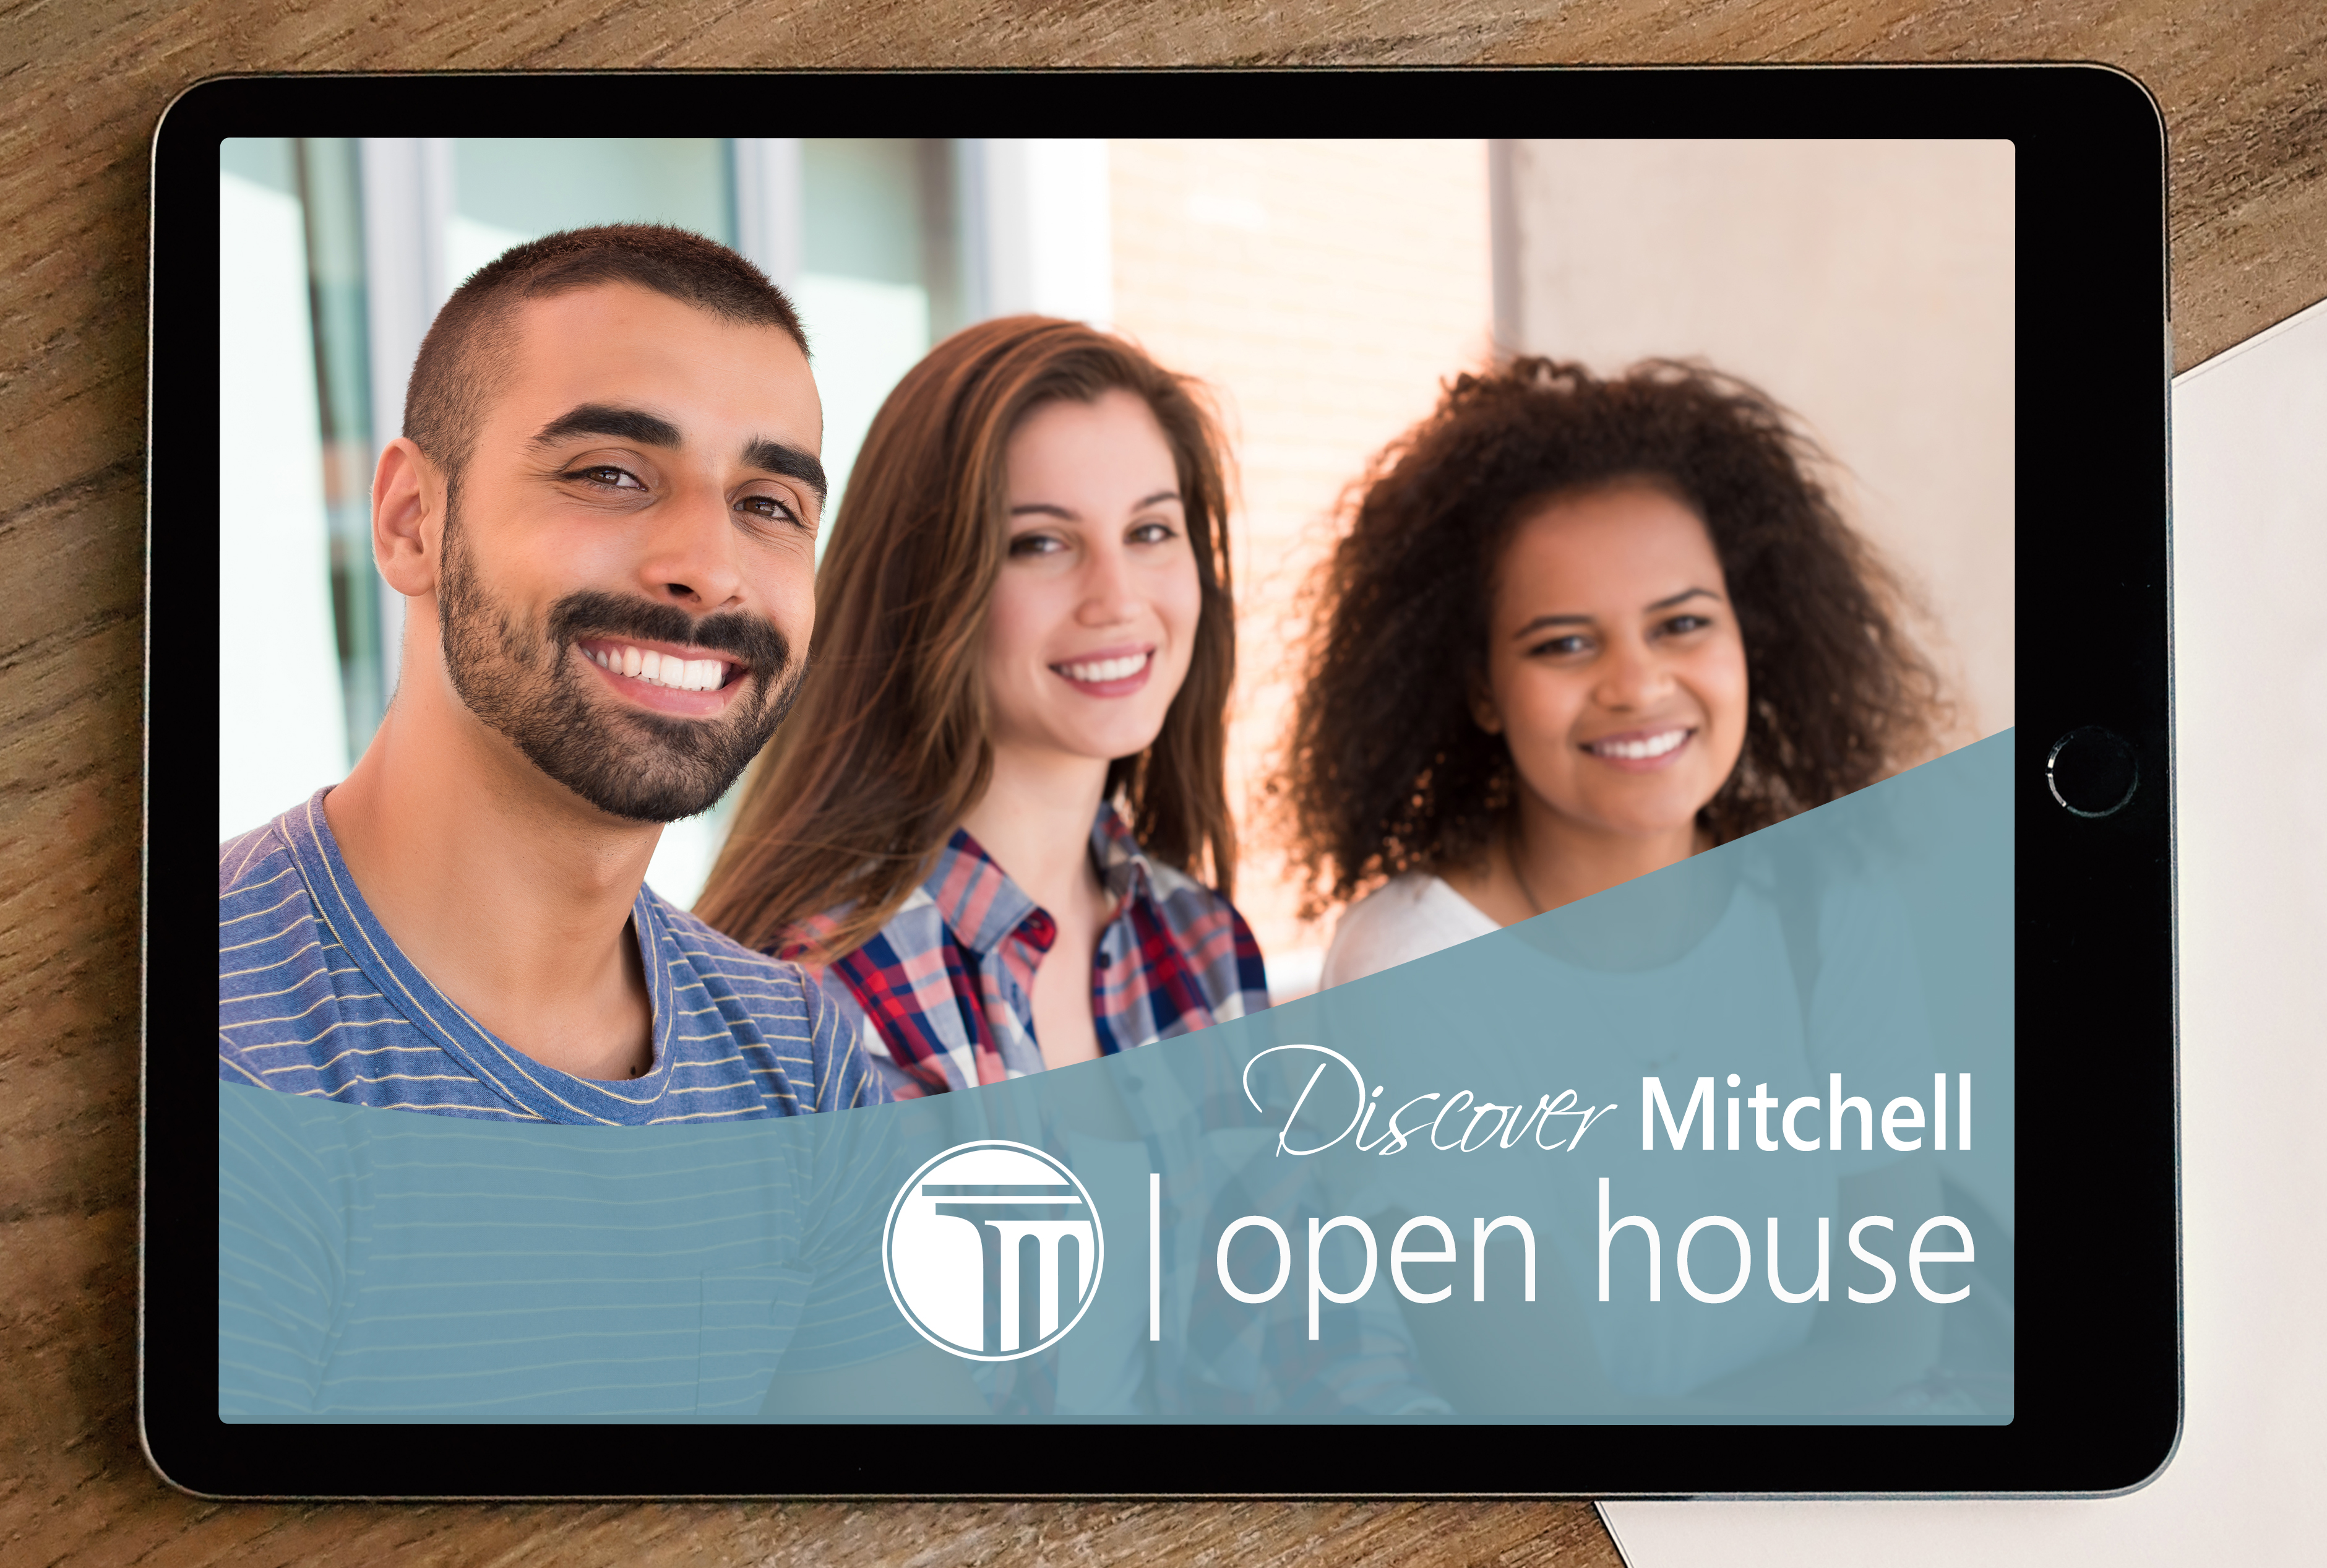 DIscover Mitchell Open House